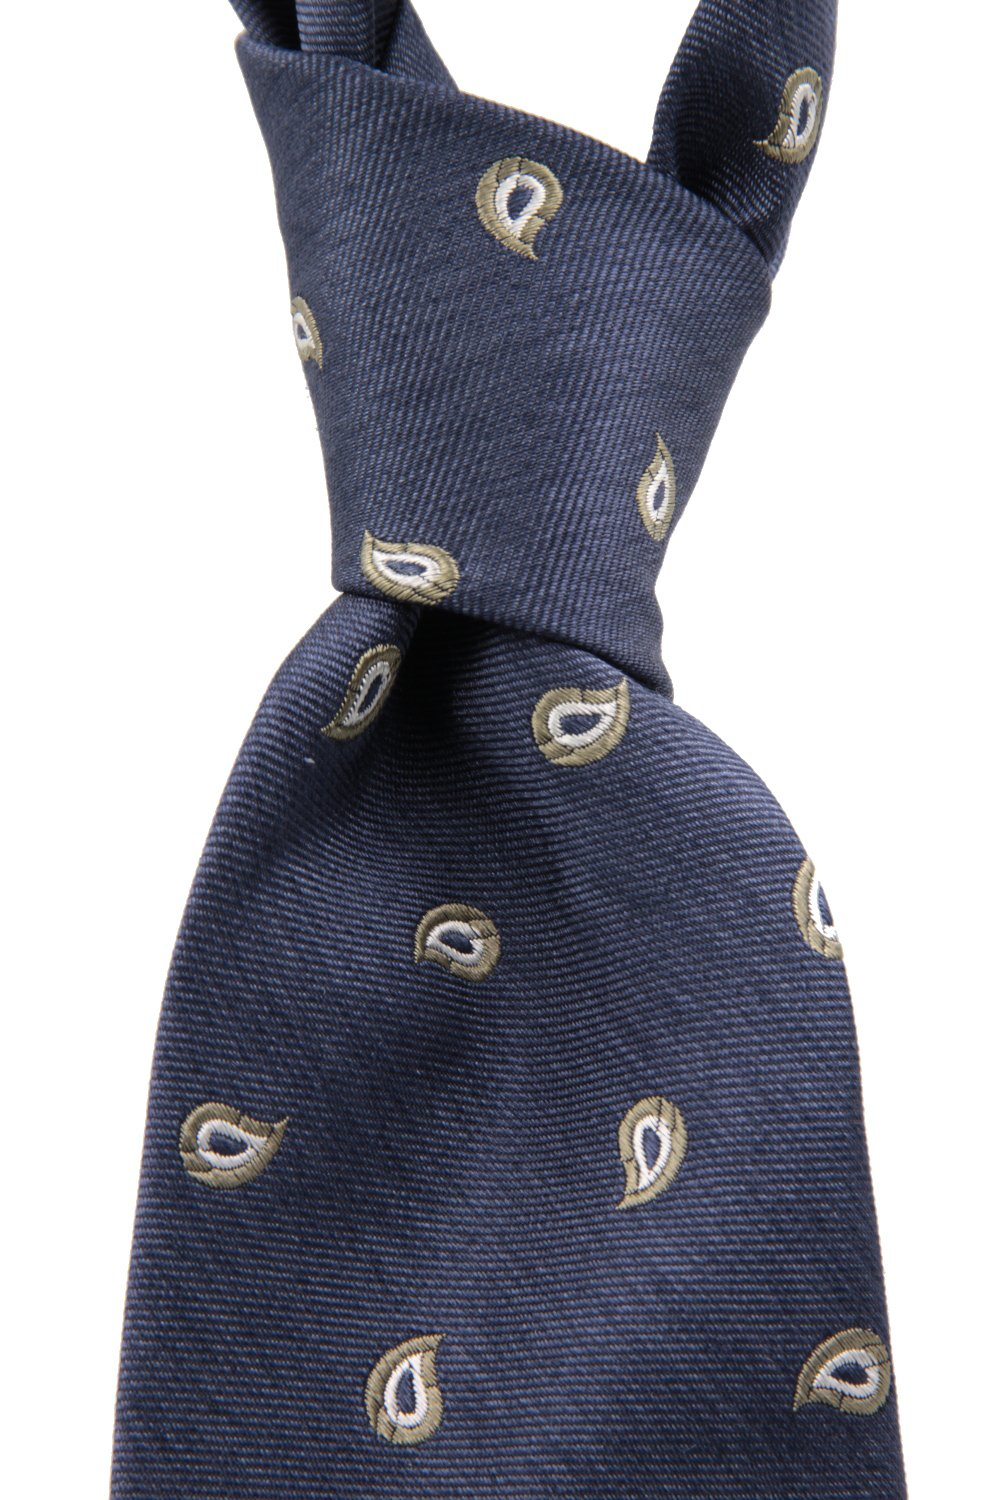 Royal blue, white and olive green paisley tie